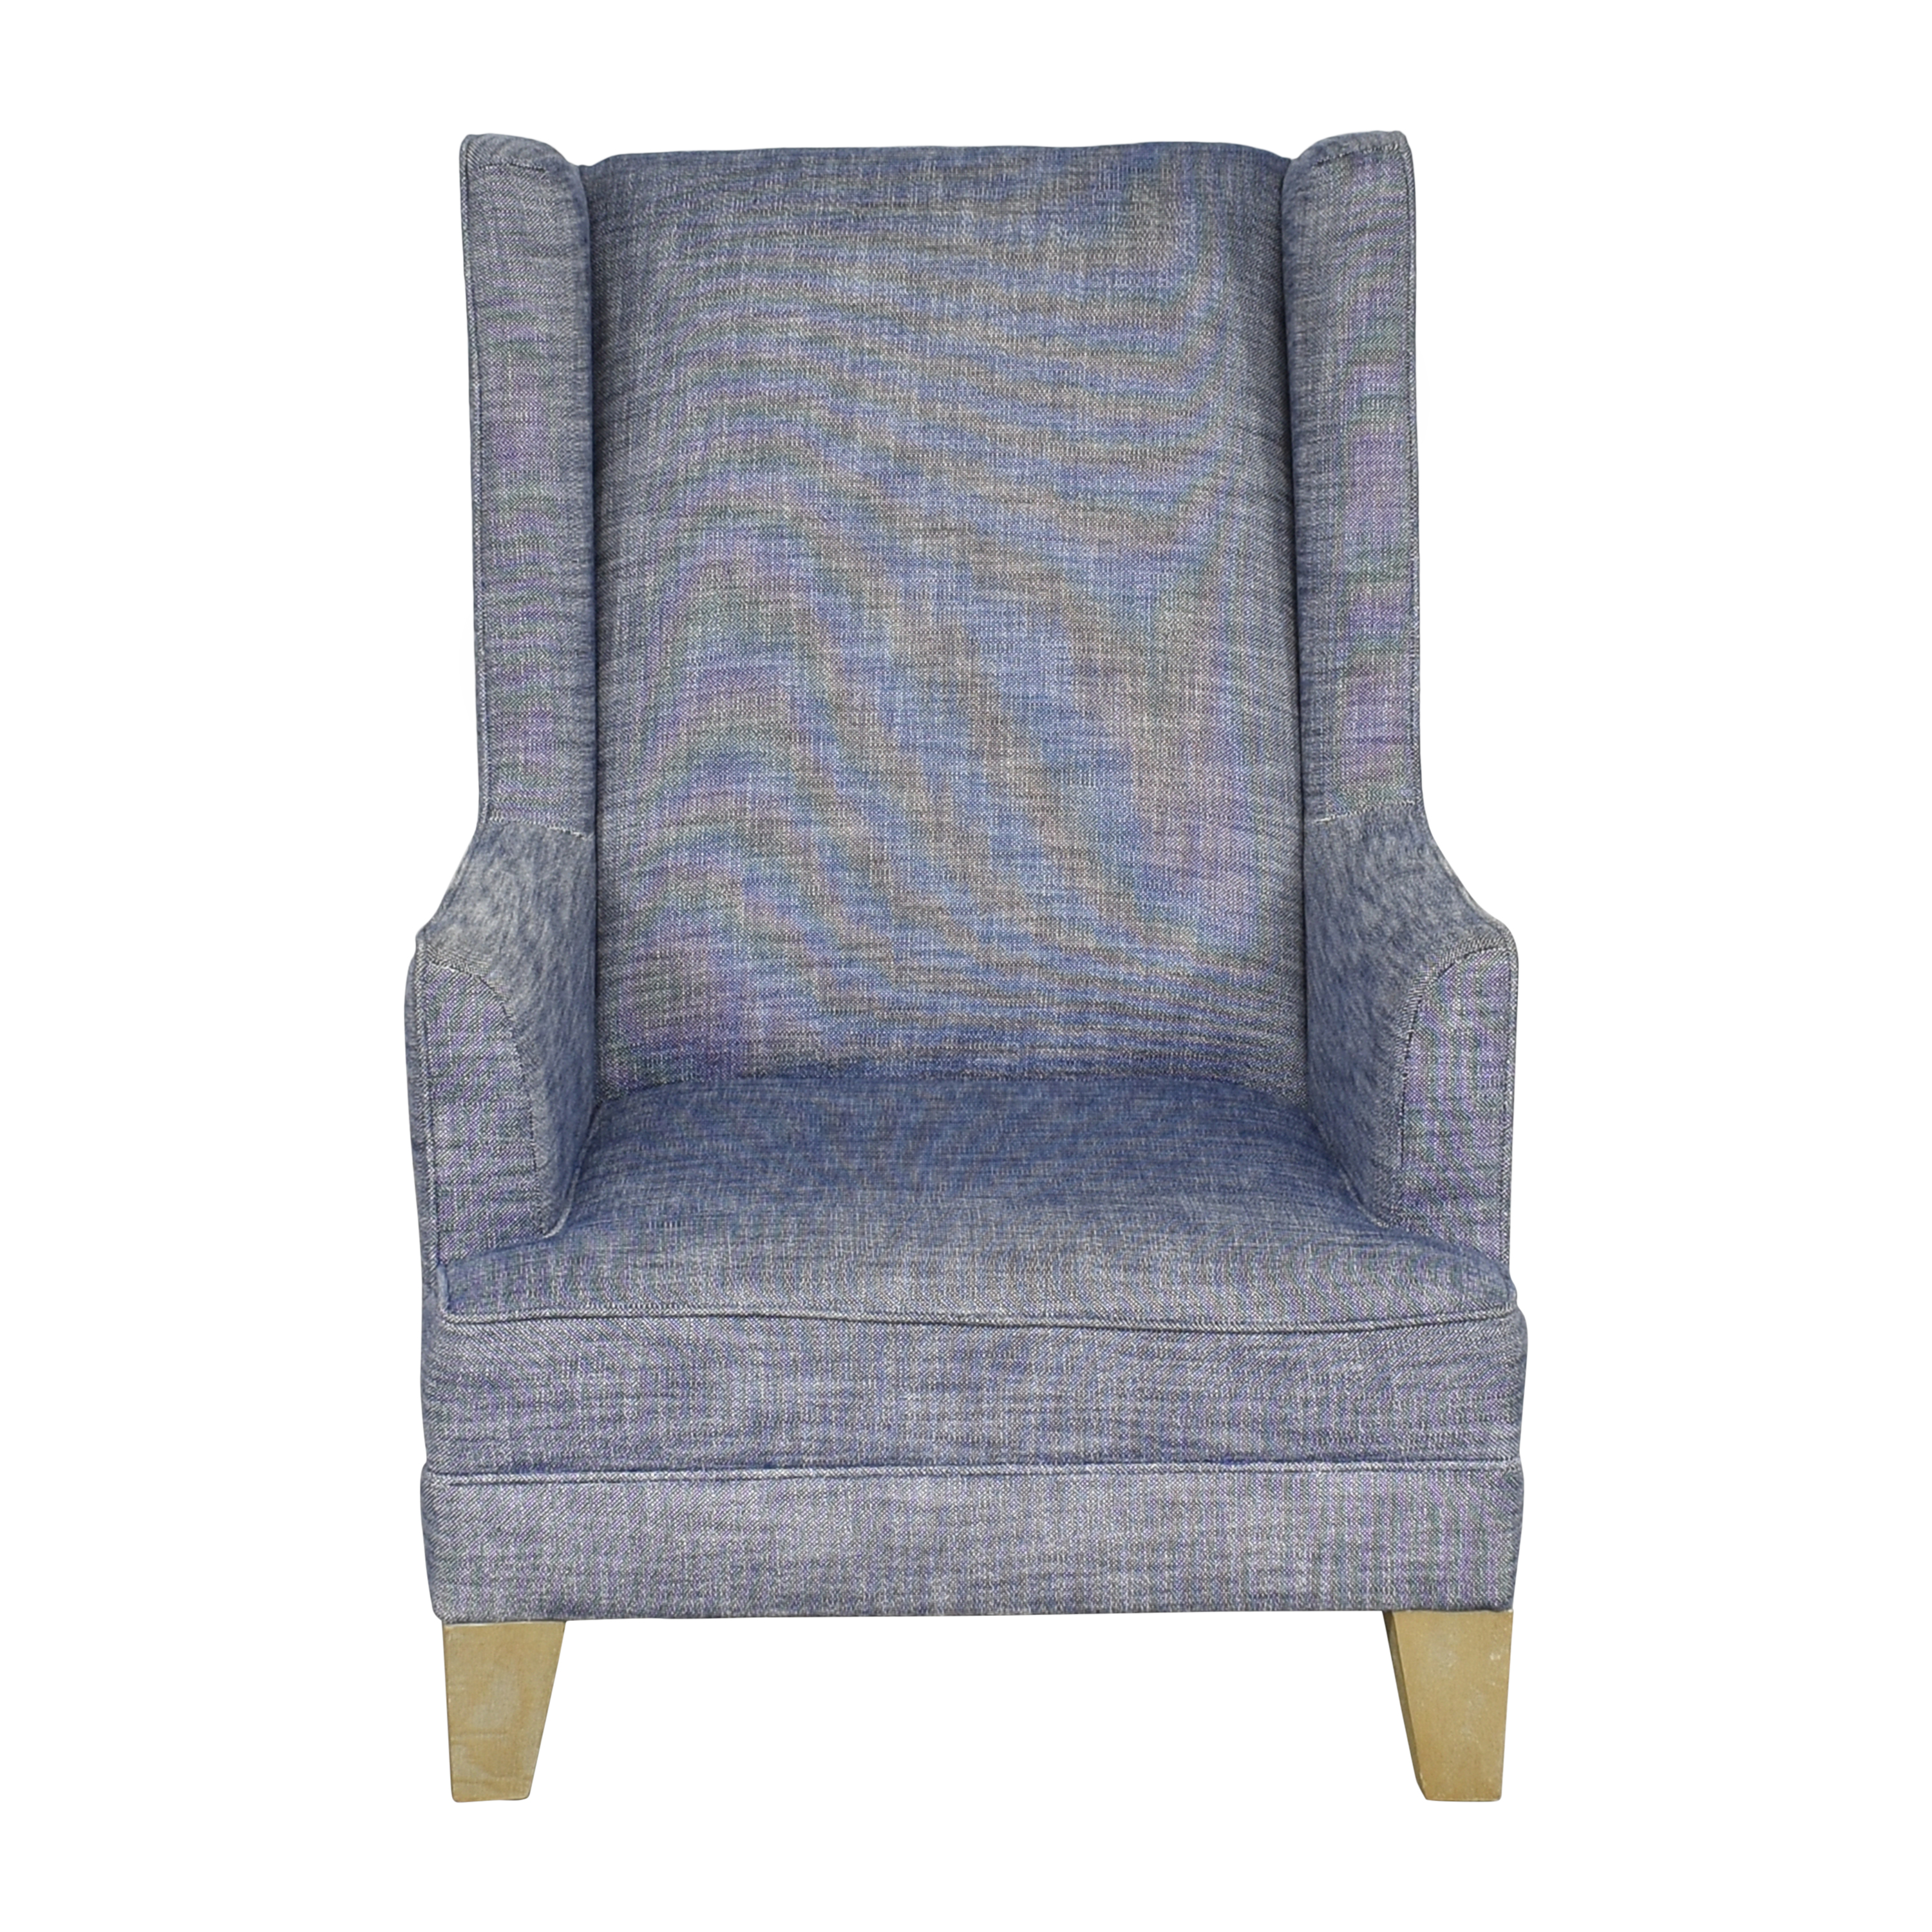 Pottery Barn Kids Pottery Barn Kids Wing Back Chair ct